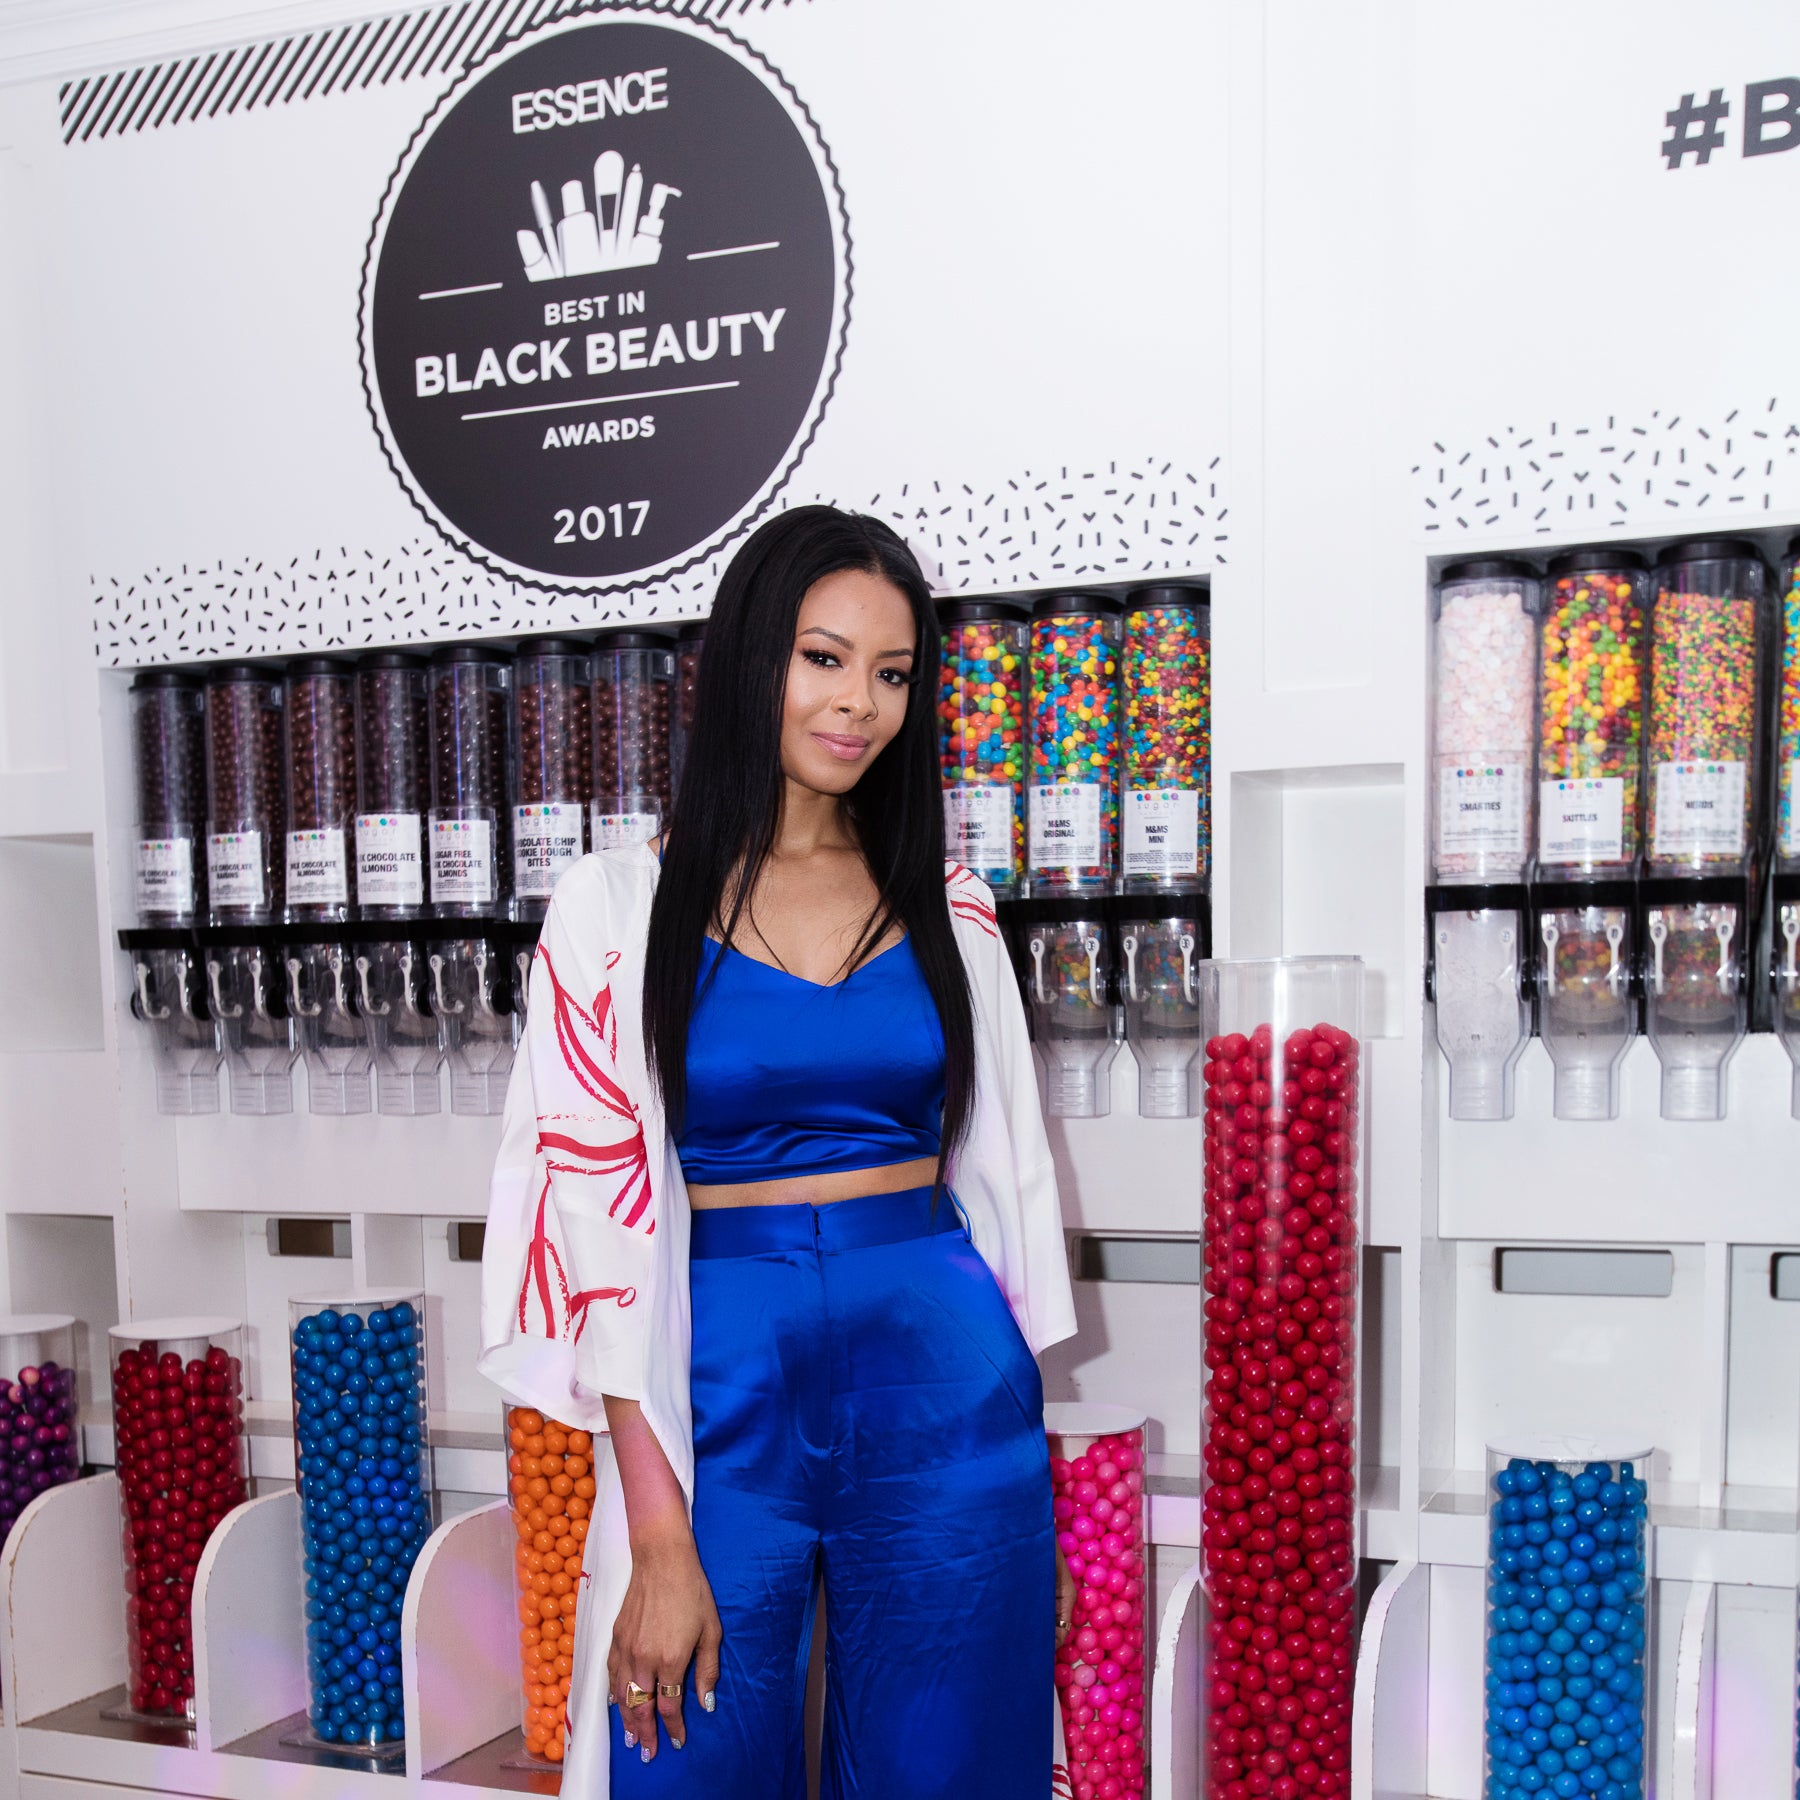 Go Inside ESSENCE's Best in Black Beauty Awards Celebration